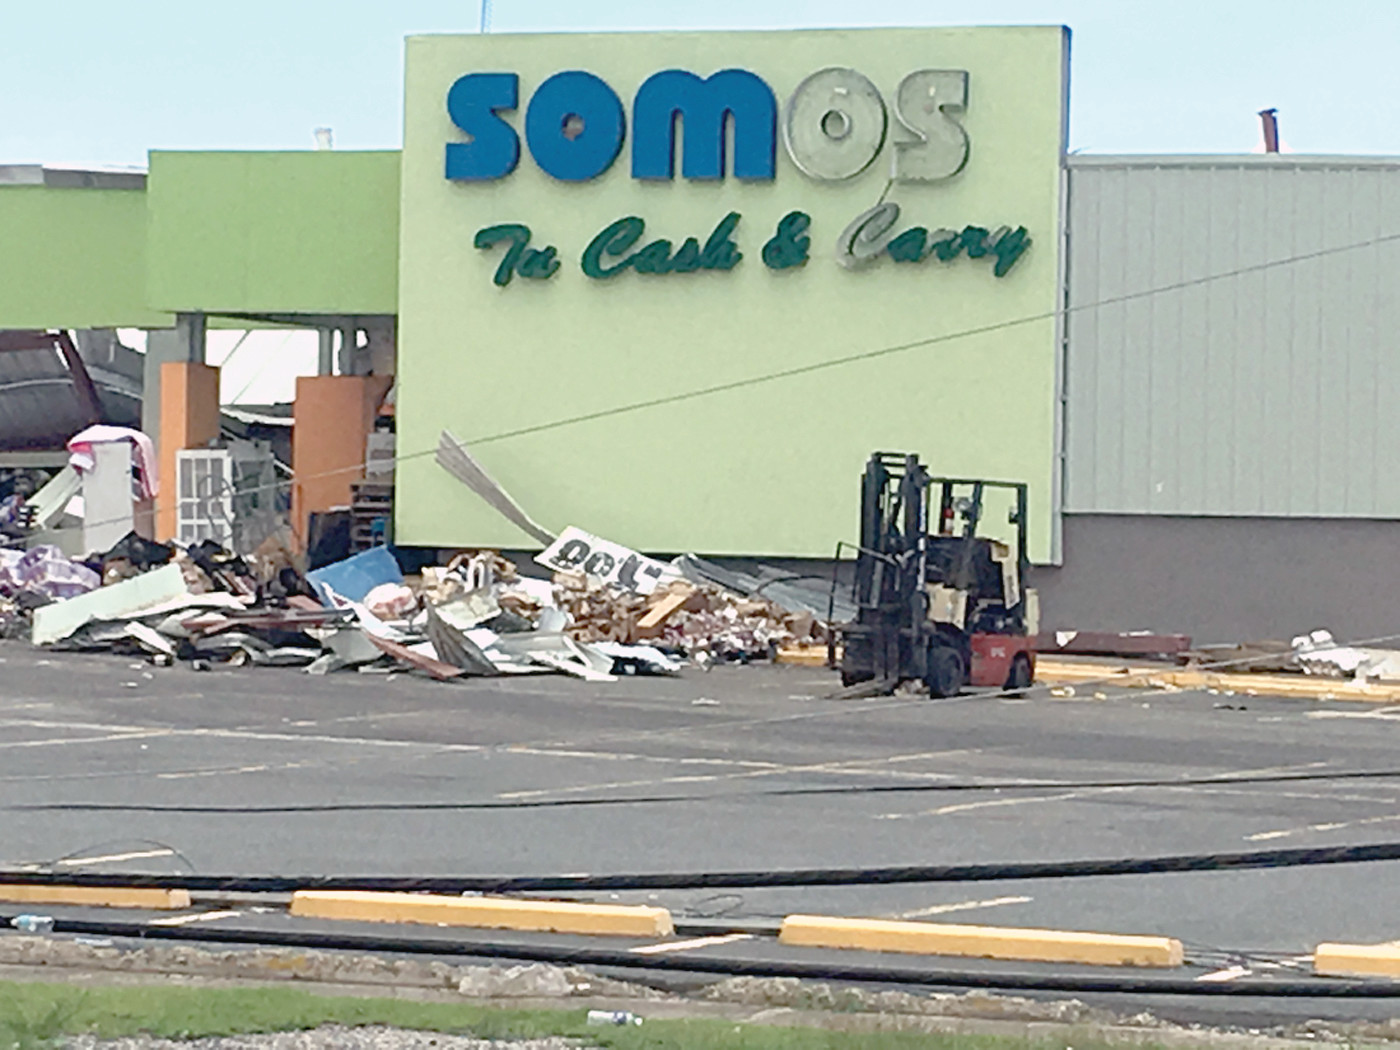 DEMOLISHED: What used to be a Somos Cash and Carry department store, reduced to rubble by the force of Hurricane Maria.